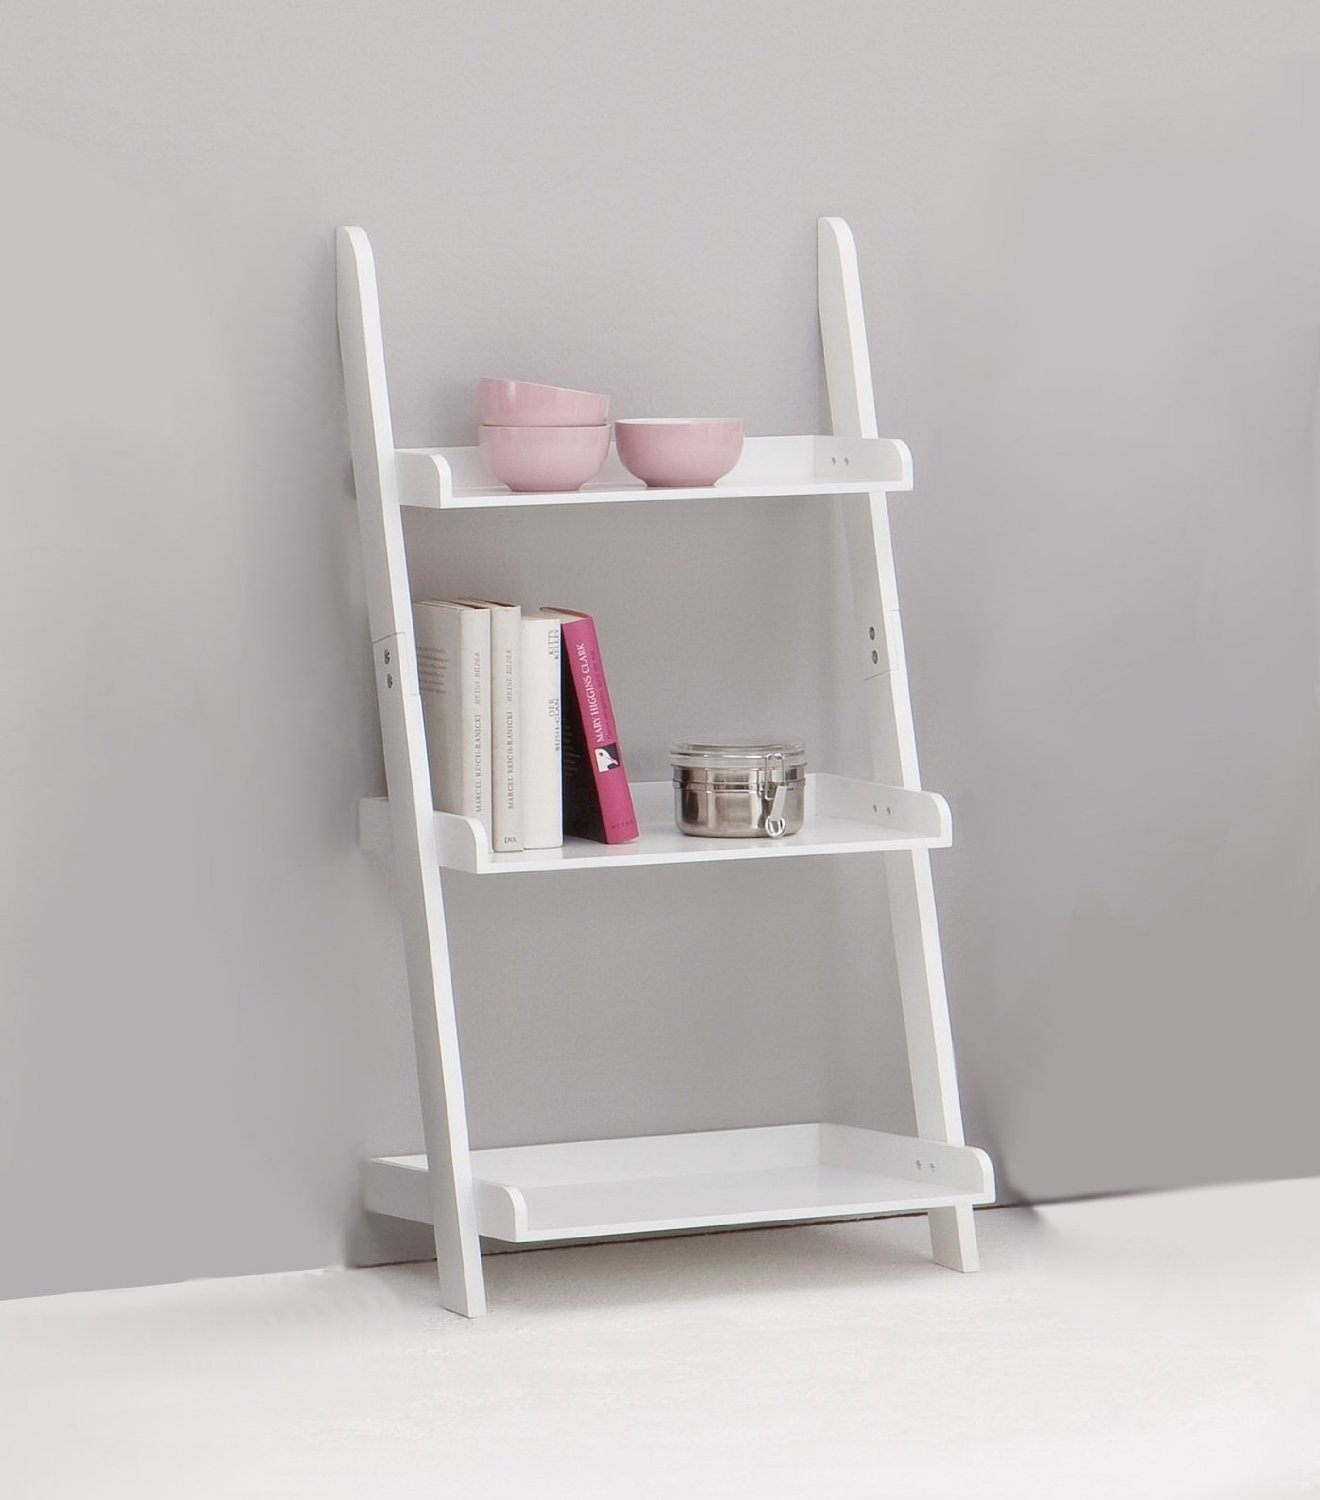 Statuette Of White Leaning Desk Remodel Inspiration Furniture Regarding White Ladder Shelf (View 11 of 15)